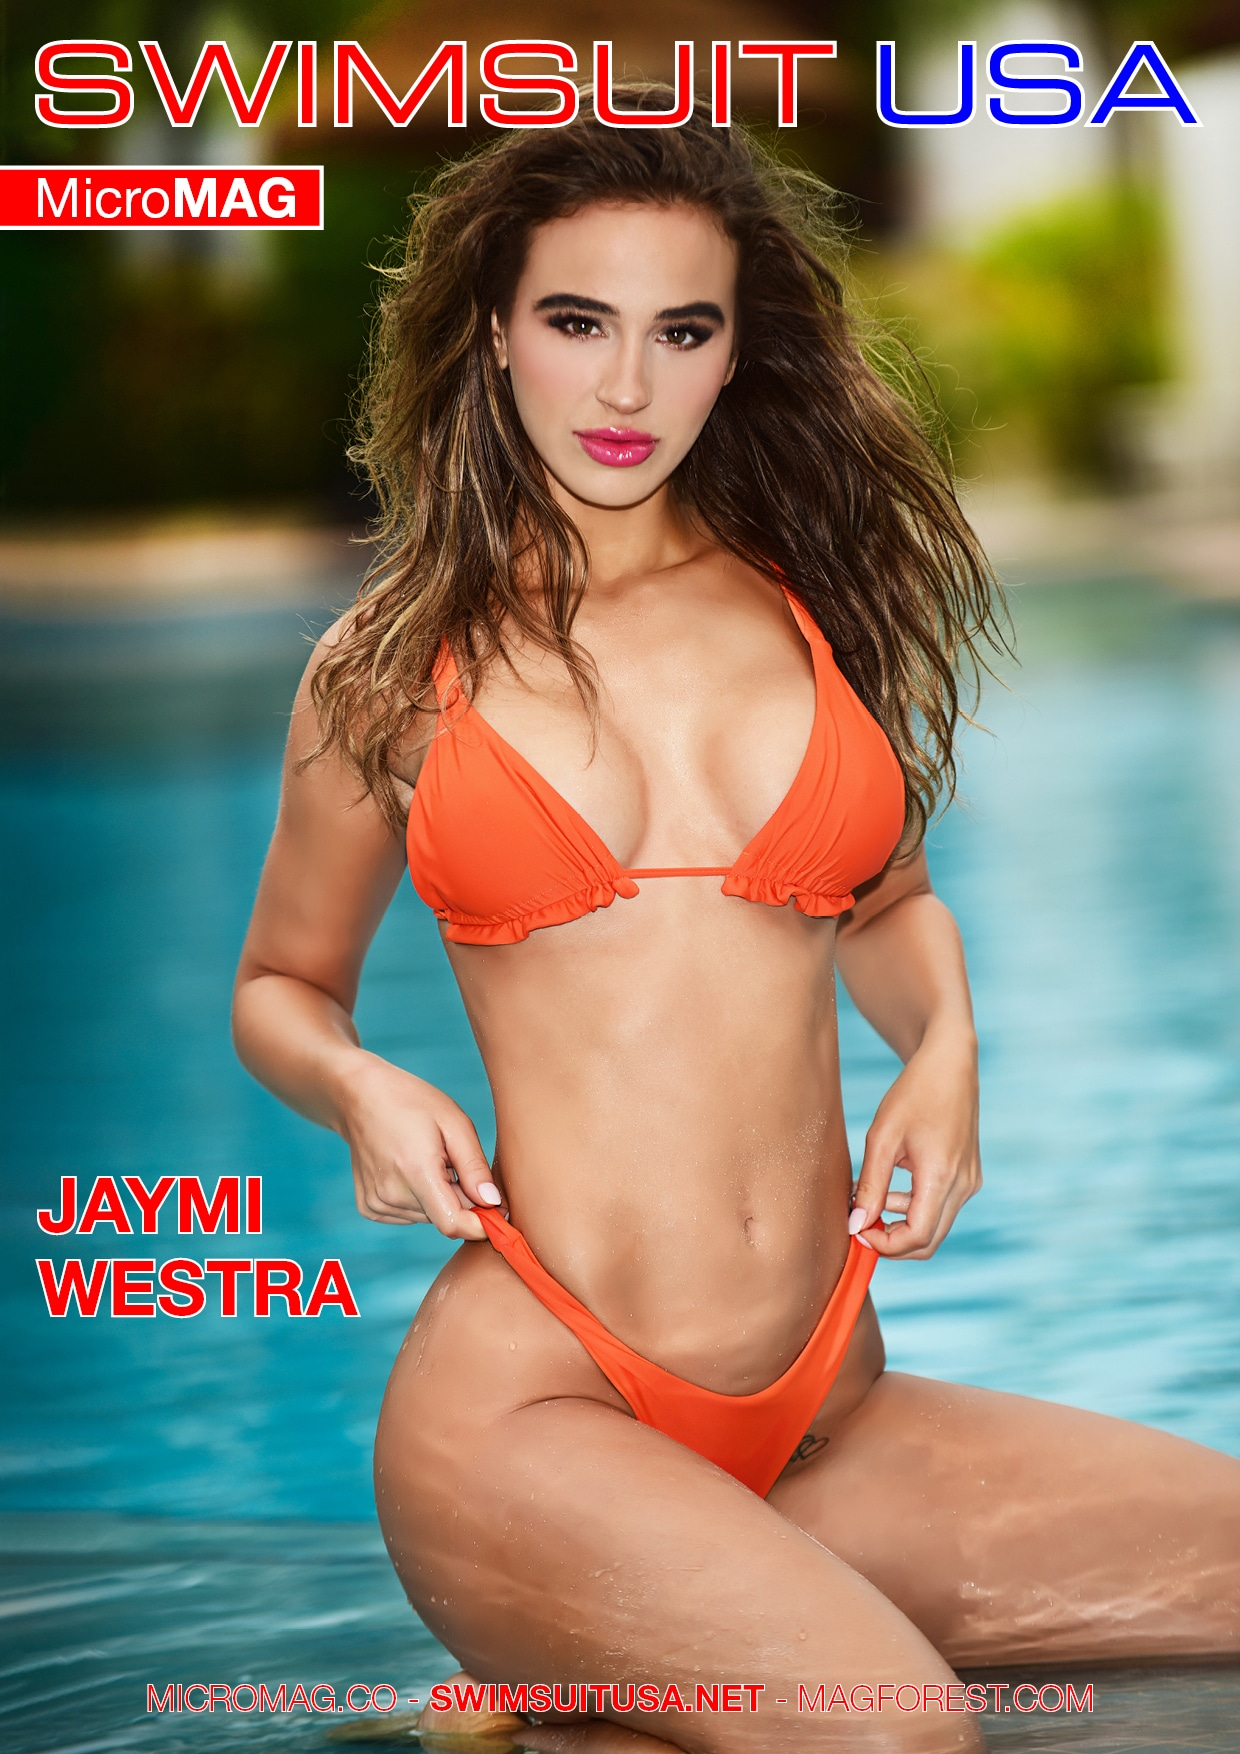 Juan Irizarry MicroMAG - Maya - Issue 2 5